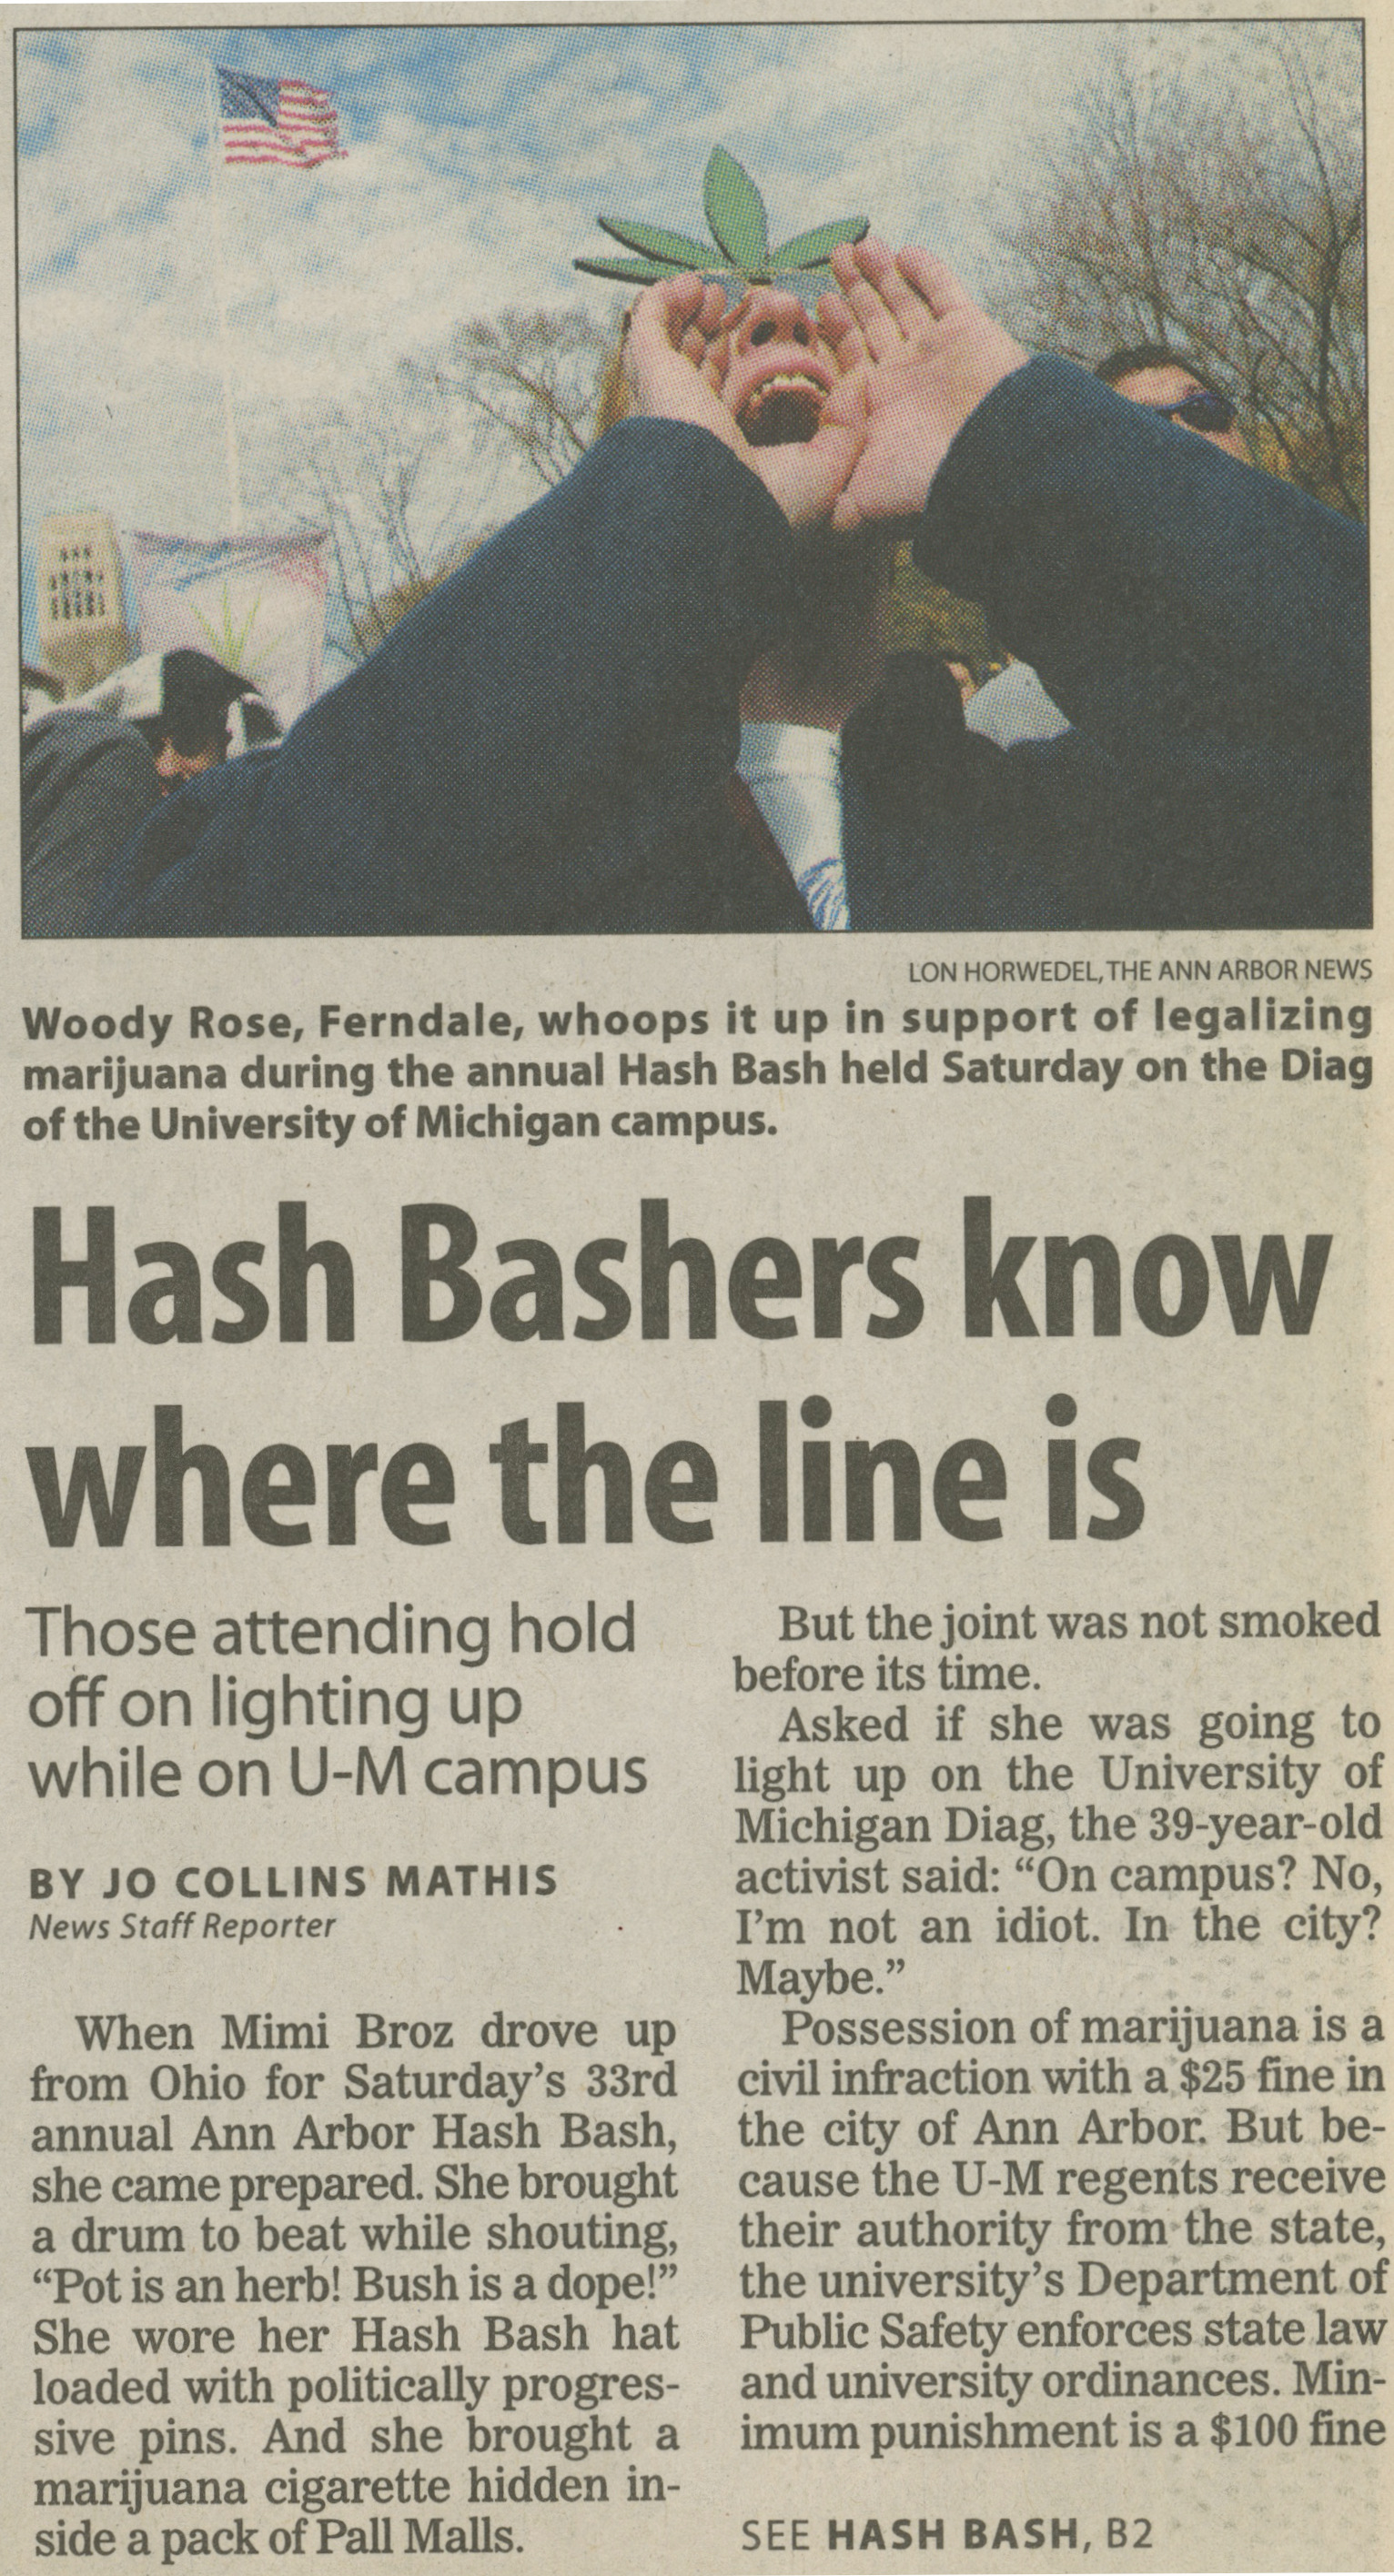 Hash Bashers Know Where The Line Is image